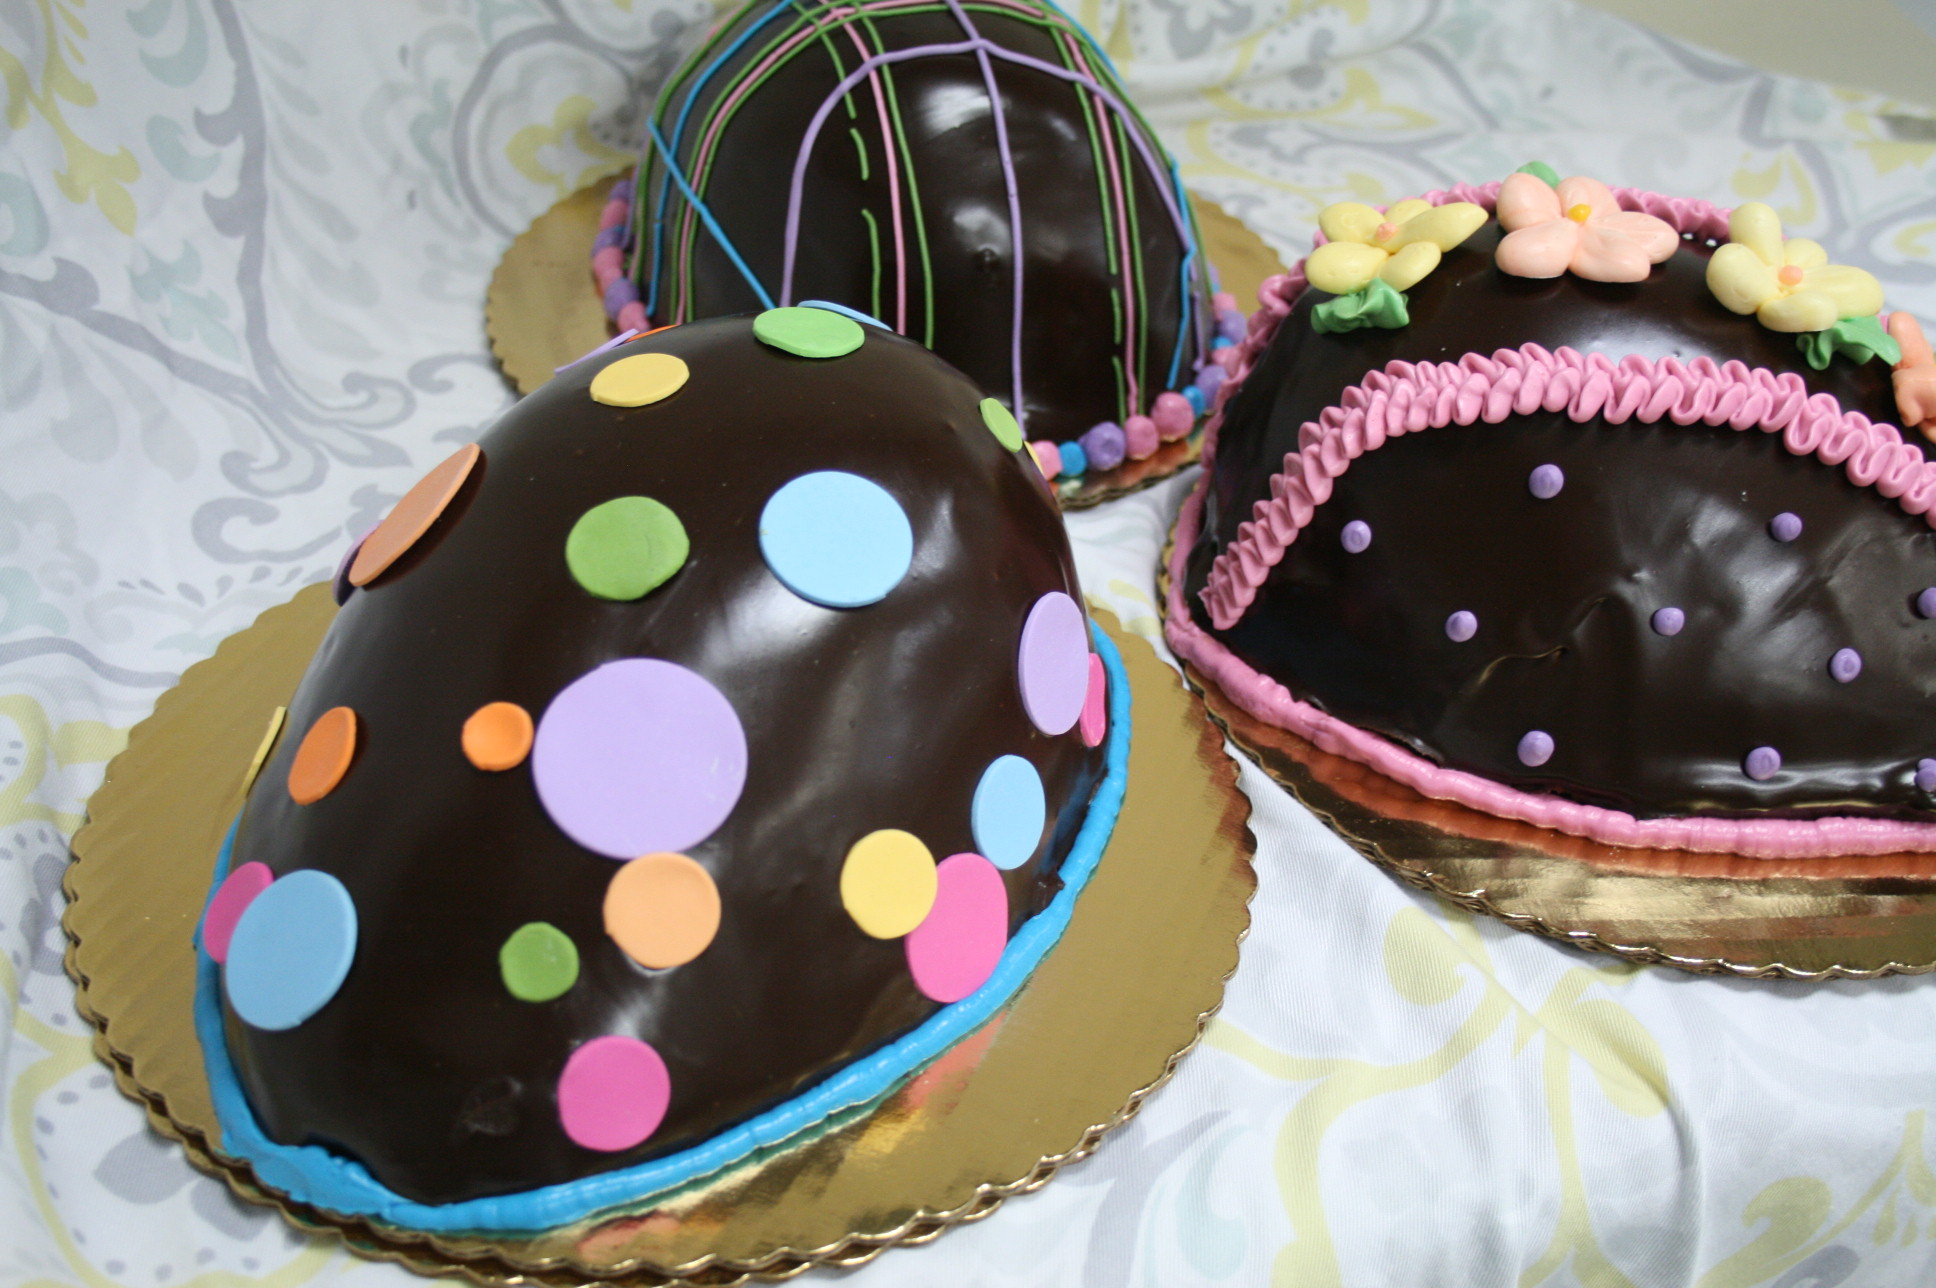 Decorating Cake Easter Ideas